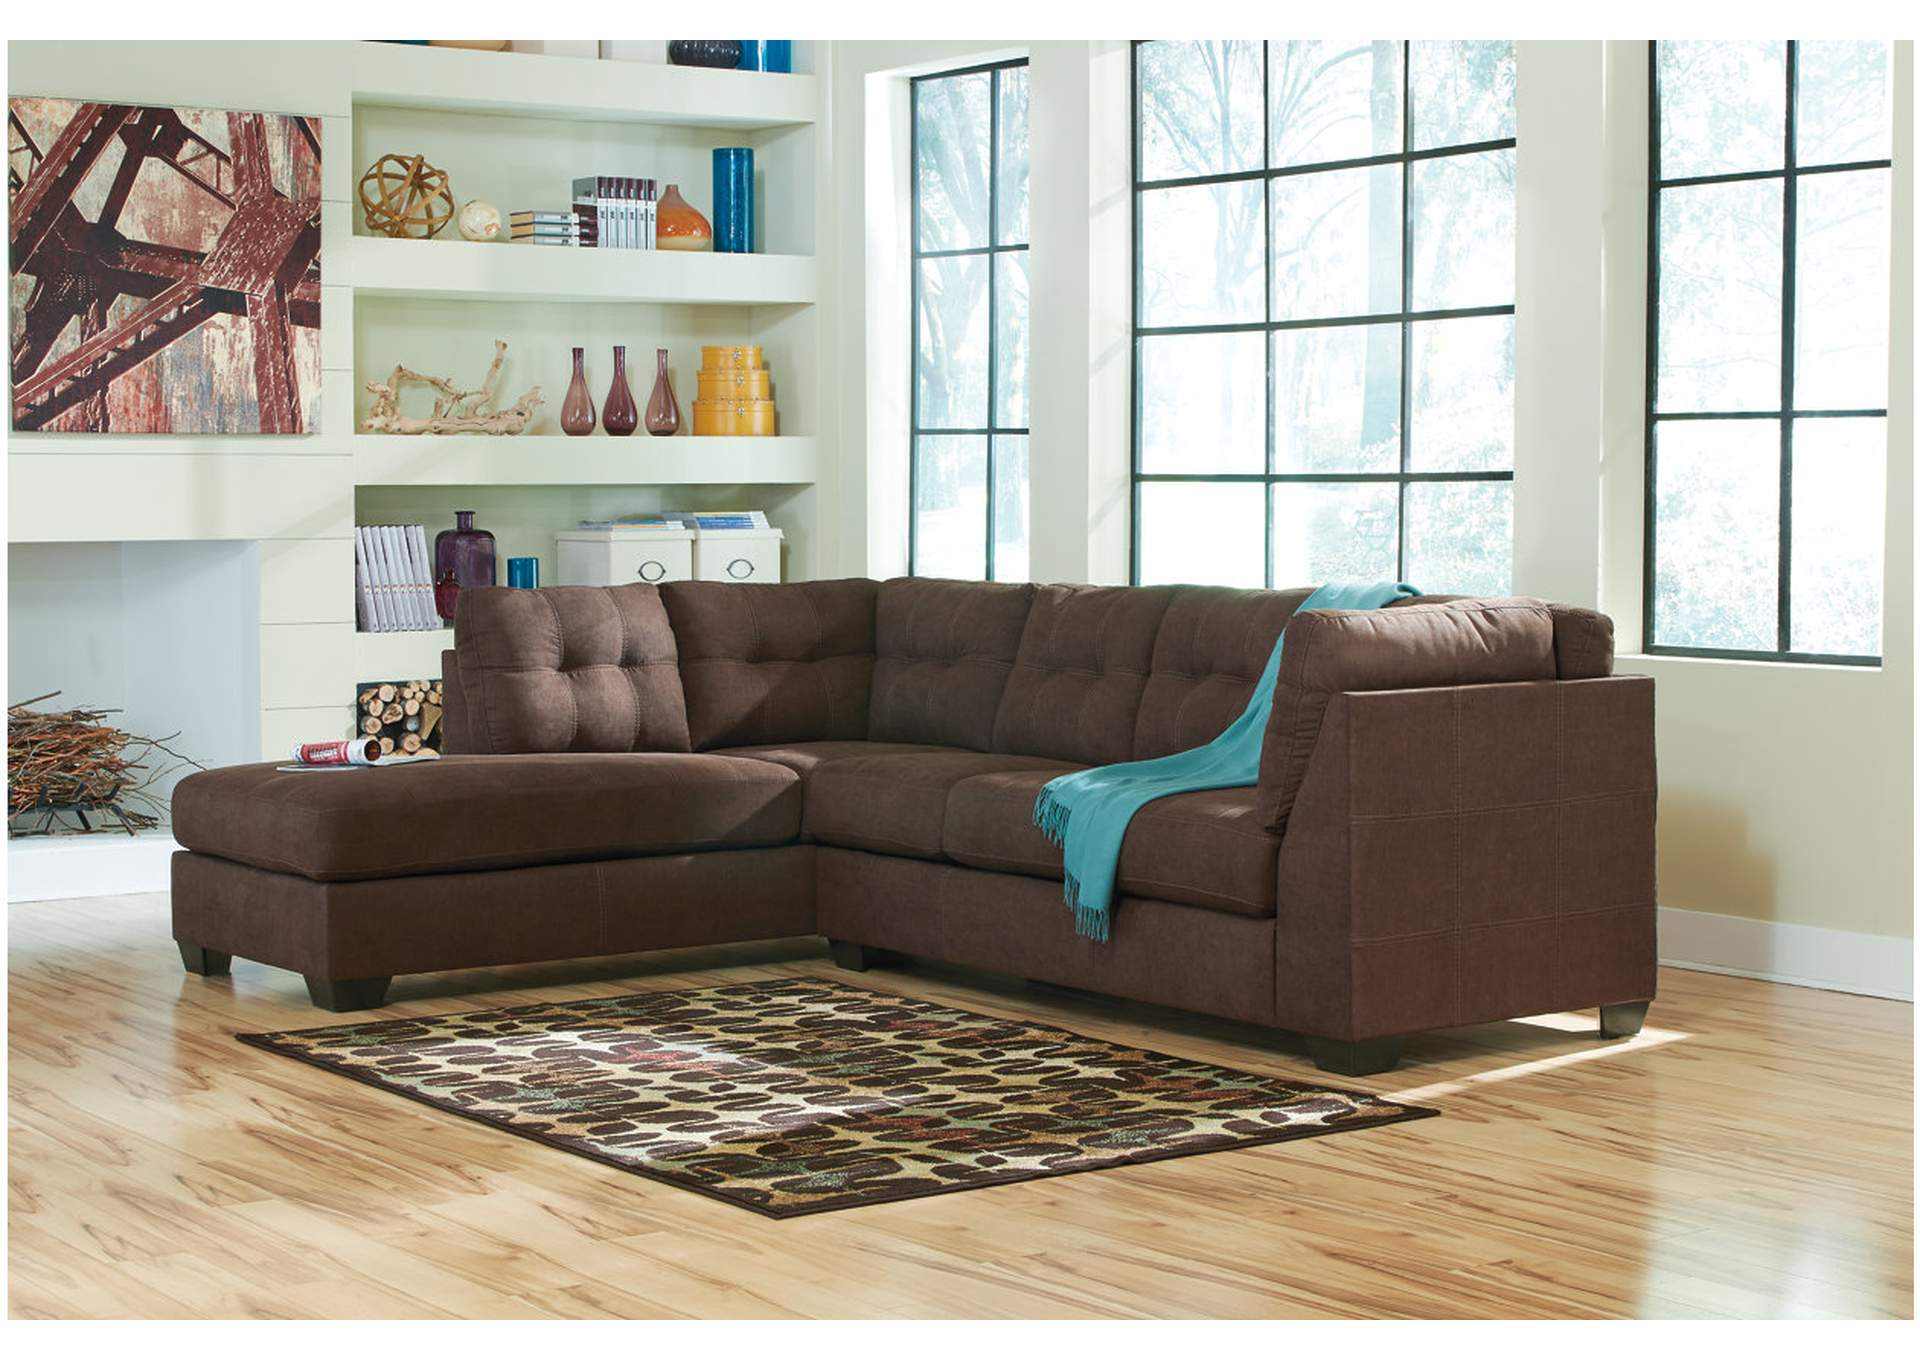 Maier Walnut Left Arm Facing Chaise End Sectional,ABF Benchcraft